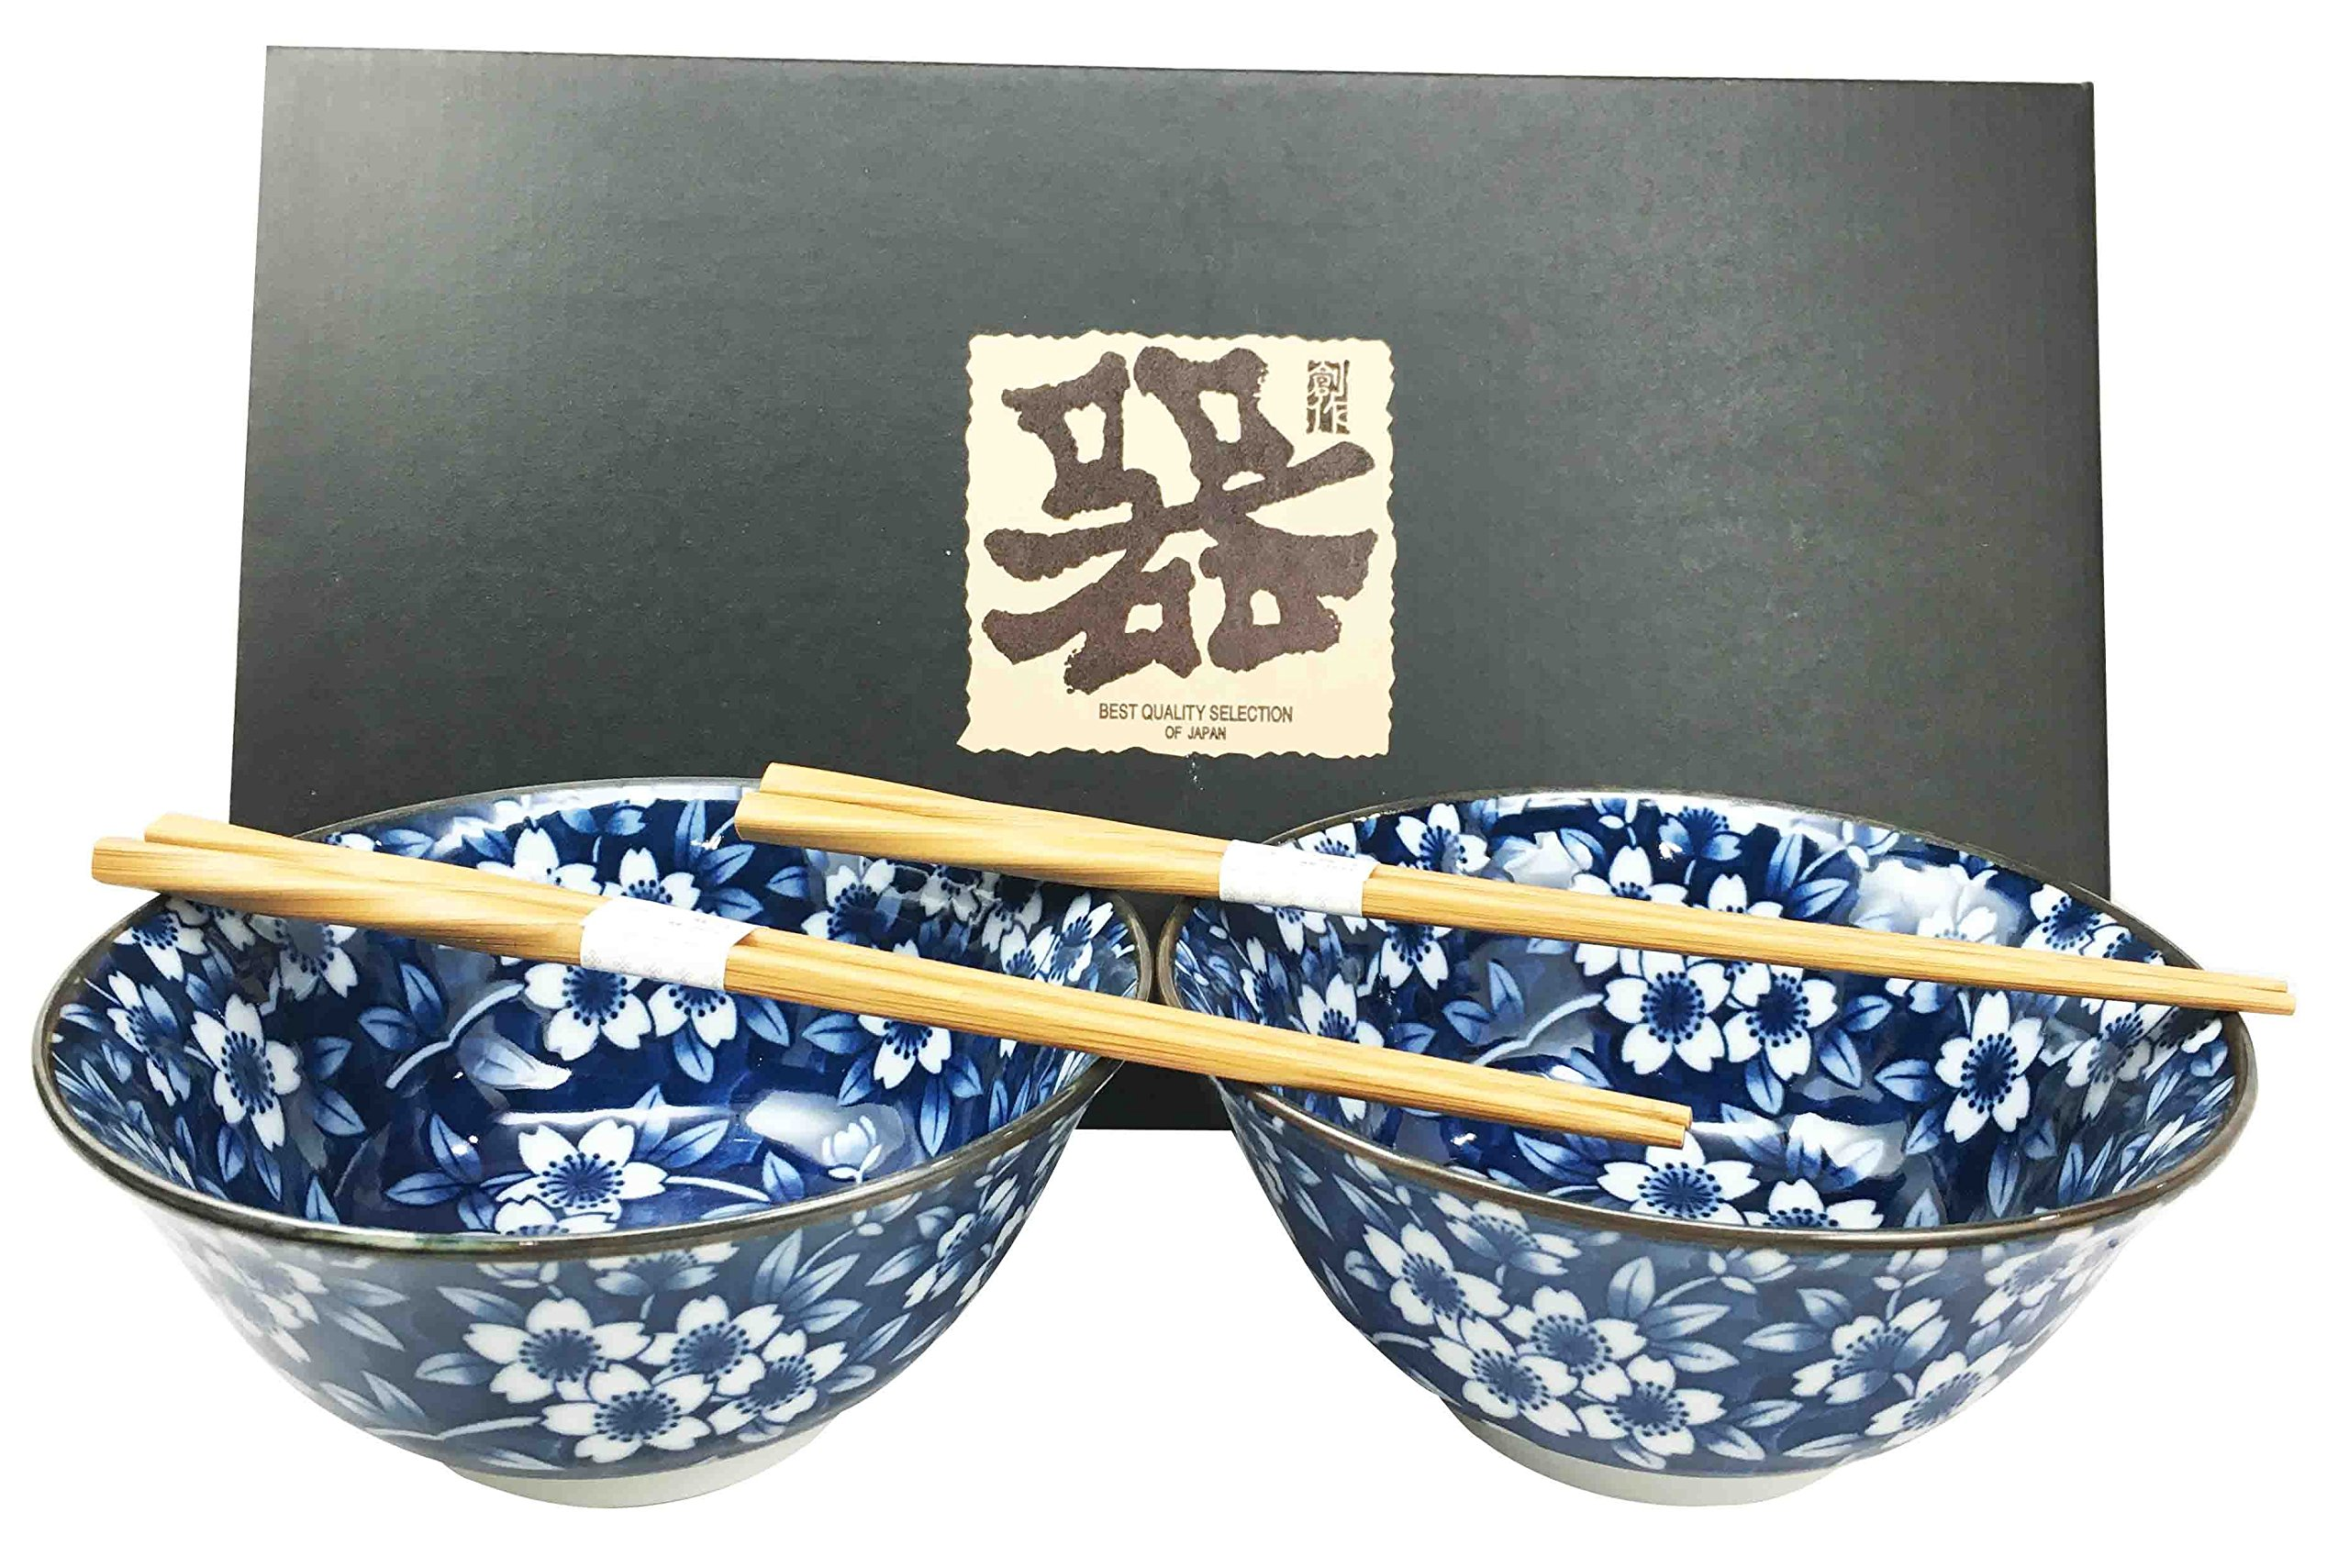 Japanese Floral Pattern Blue Ceramic Rice or Meal Bowl and Chopsticks Set Serves Two Great Gift For College Students Housewarming Asian Living Home Decor by Gifts & Decors (Image #1)